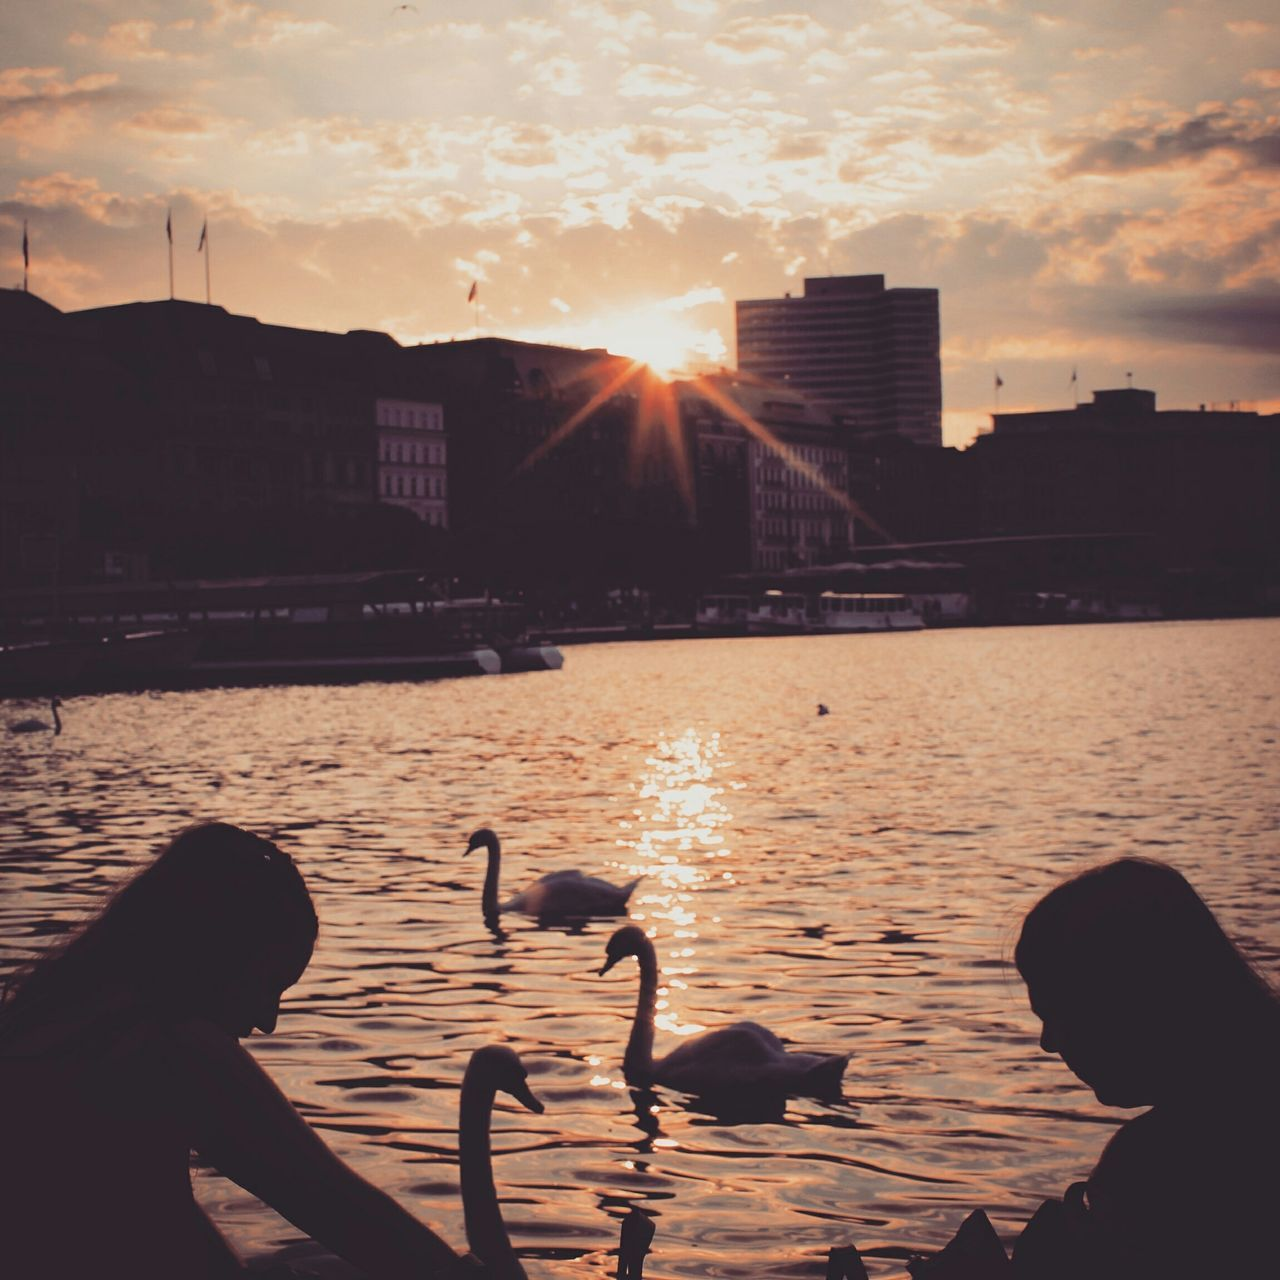 Hamburg Hamburch Hamburgcity Hamburg Alster Urban Lifestyle Sunset Hanging Out Relaxing Strangers Food